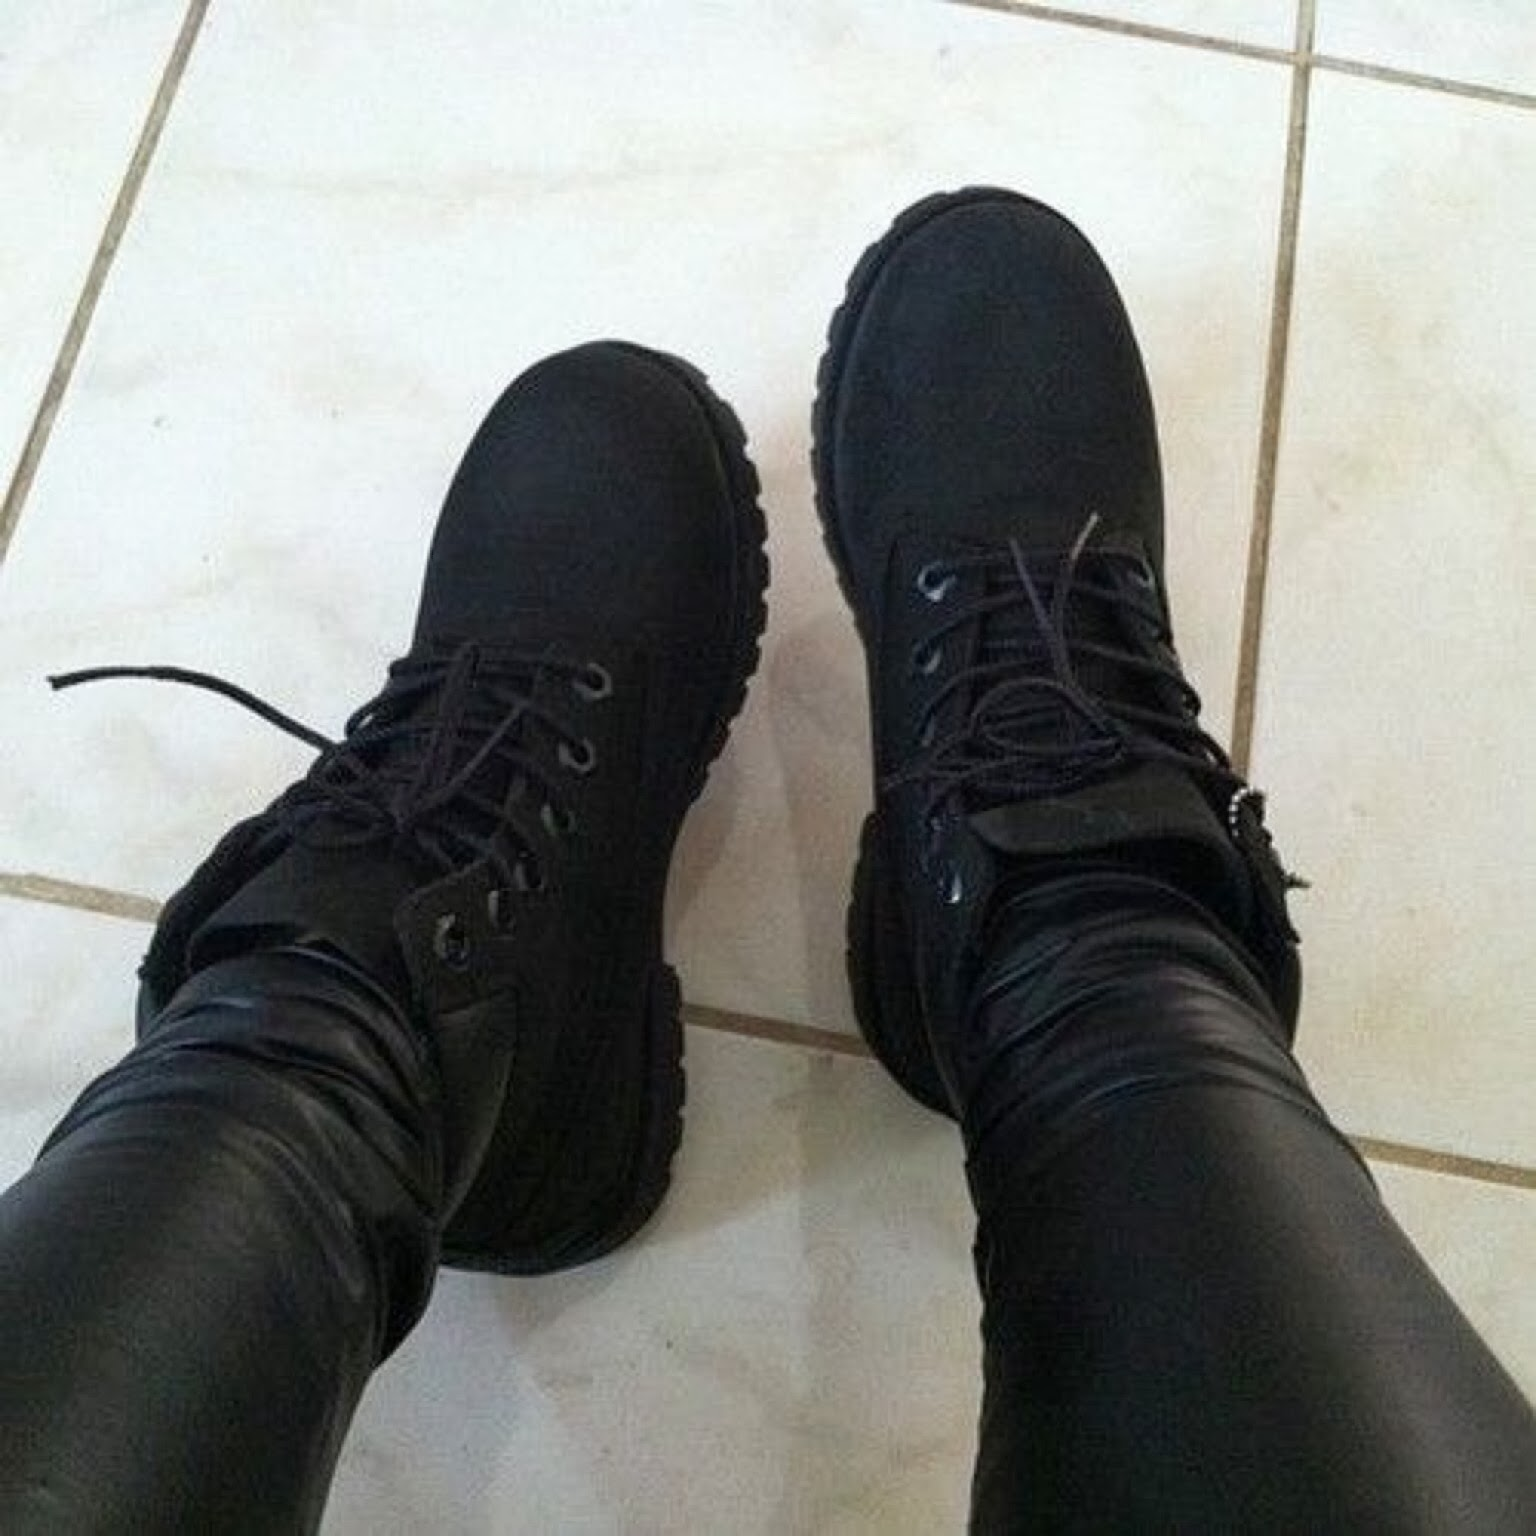 Tims Shoes Black